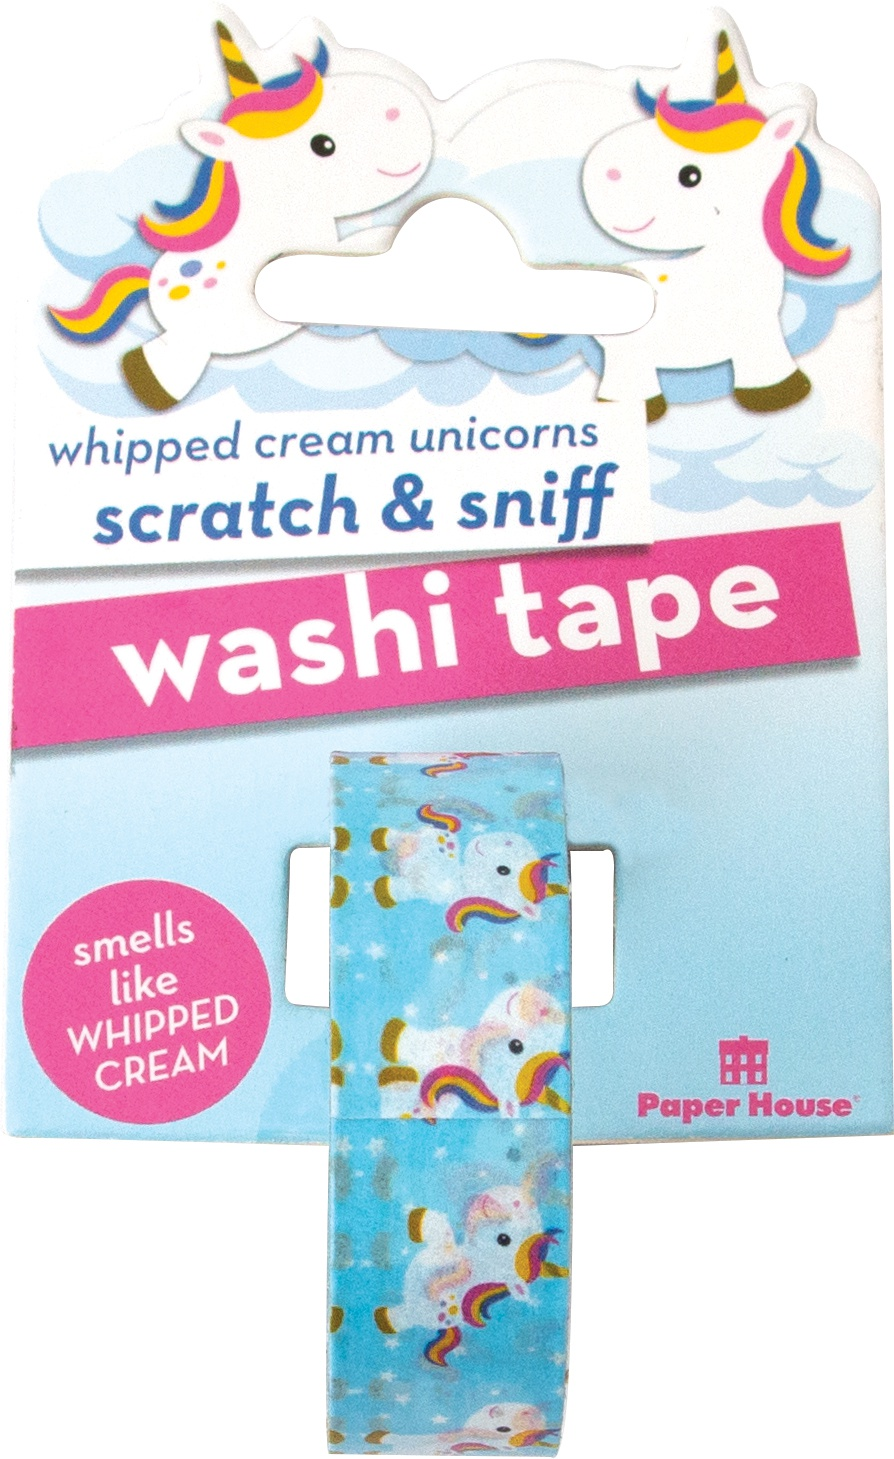 Paper House Scratch & Sniff Washi Tape-Whipped Cream Unicorn, 15mmX8m